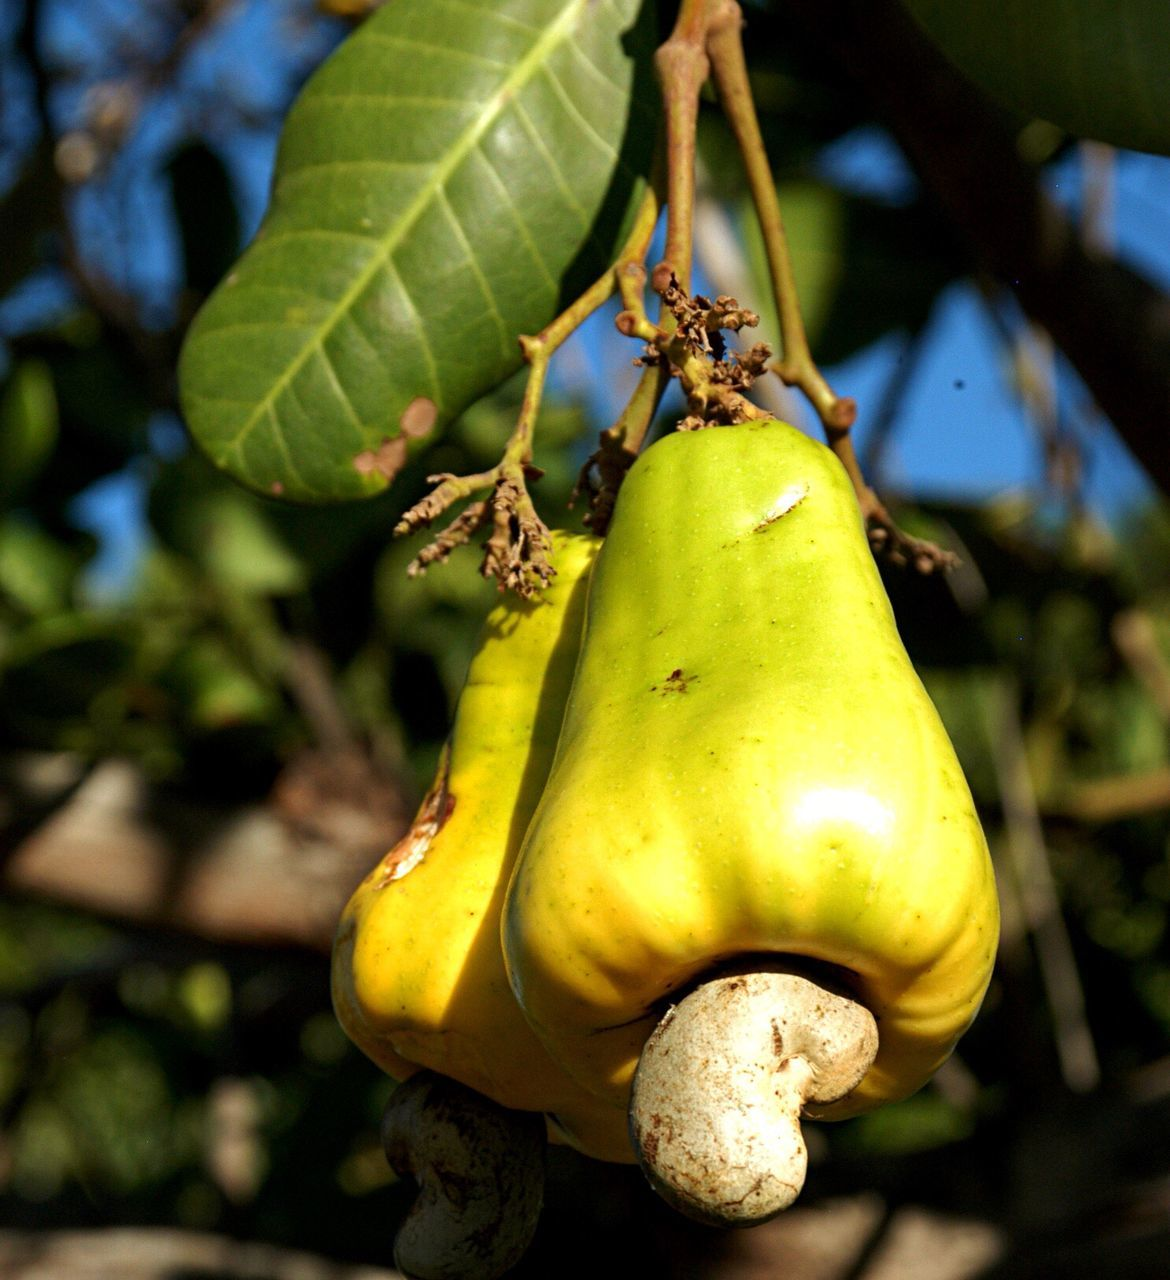 Close-Up Of Cashew Fruits Growing On Tree